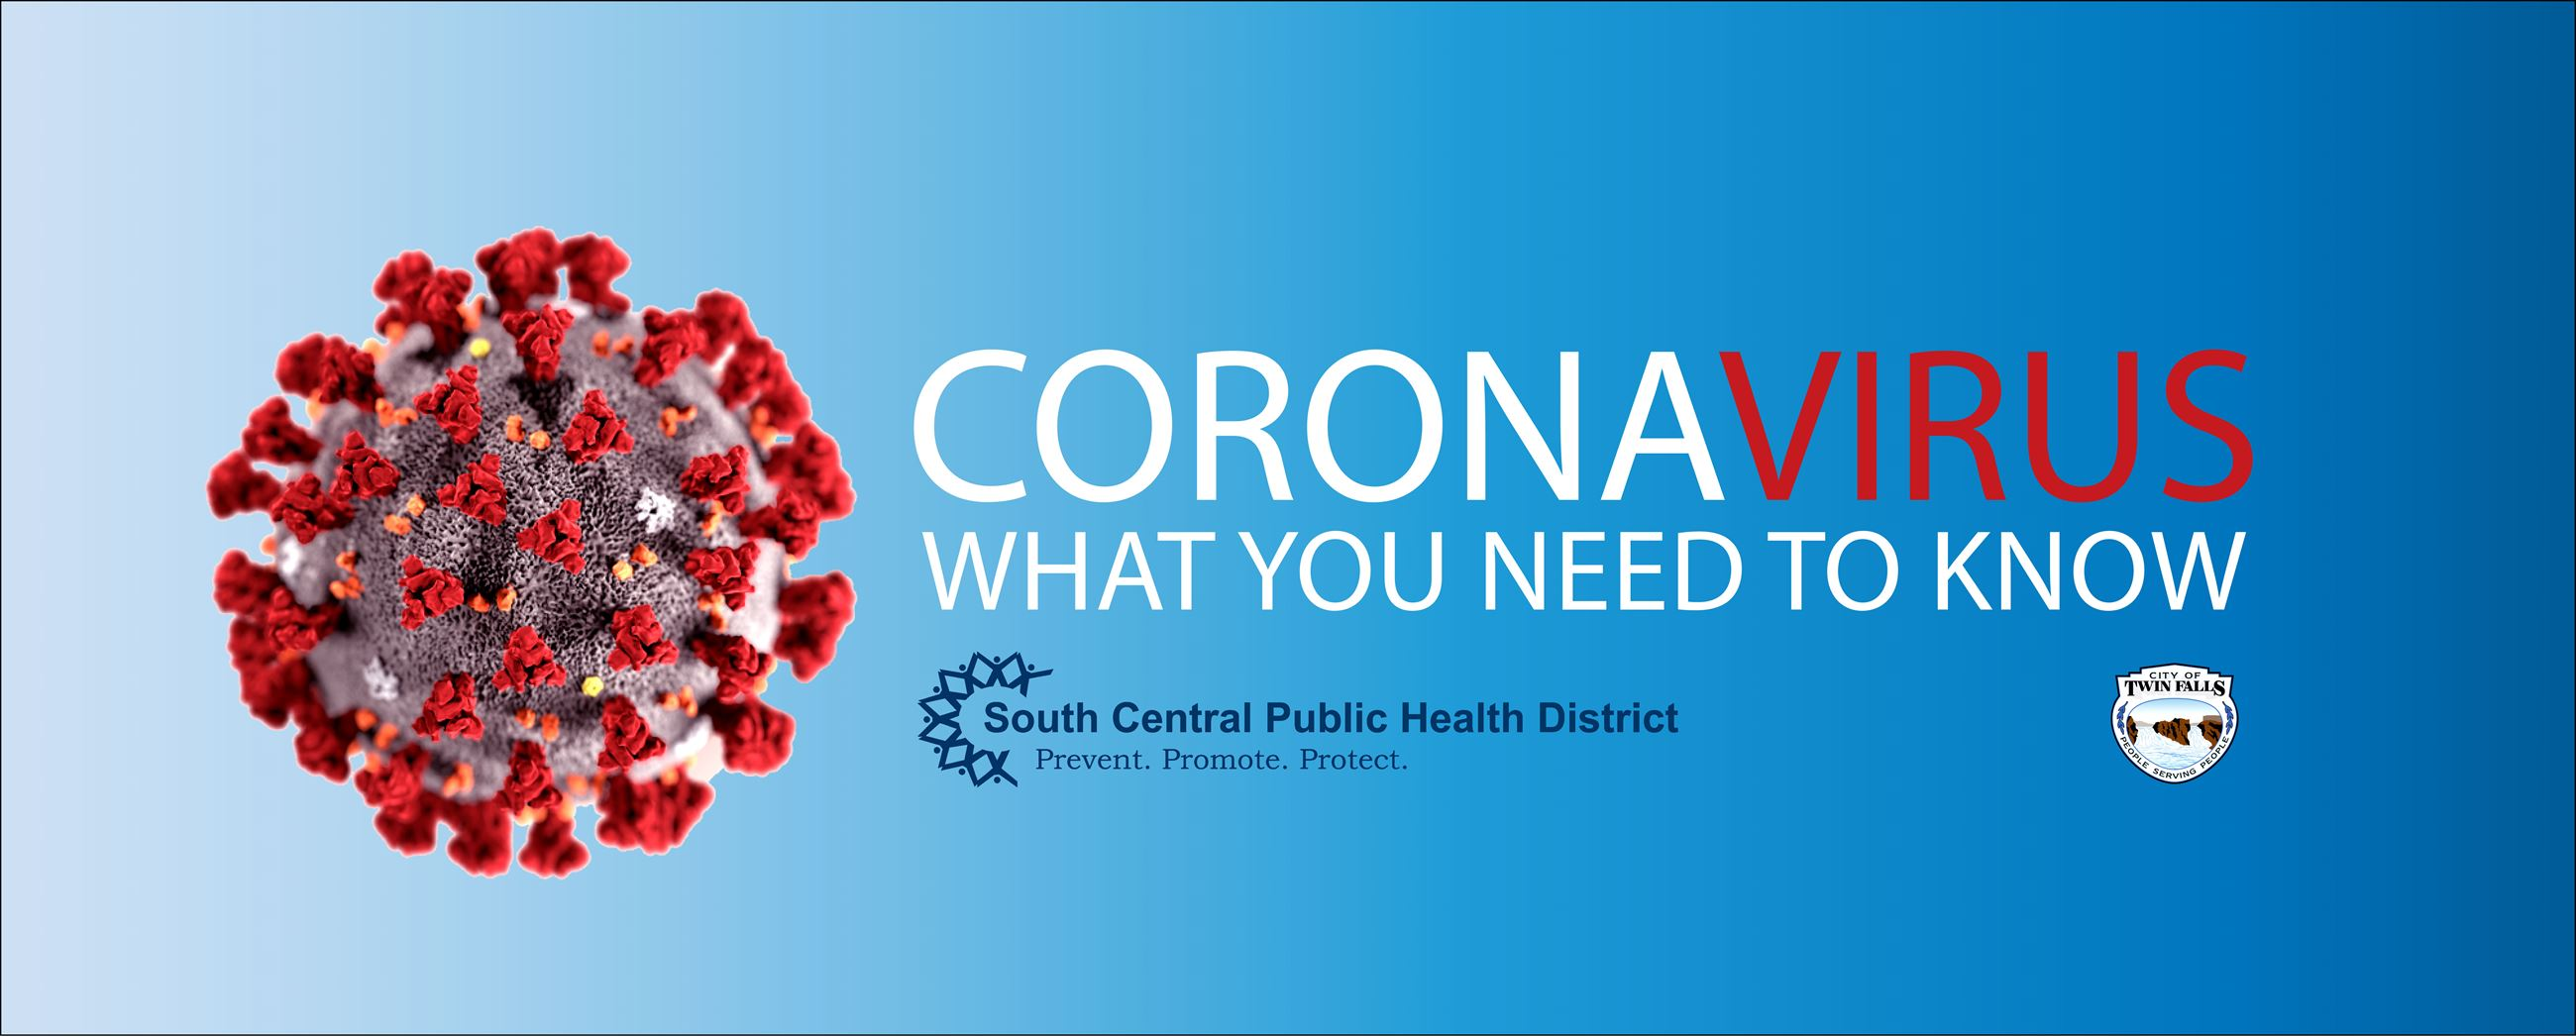 Coronavirus - What you need to know